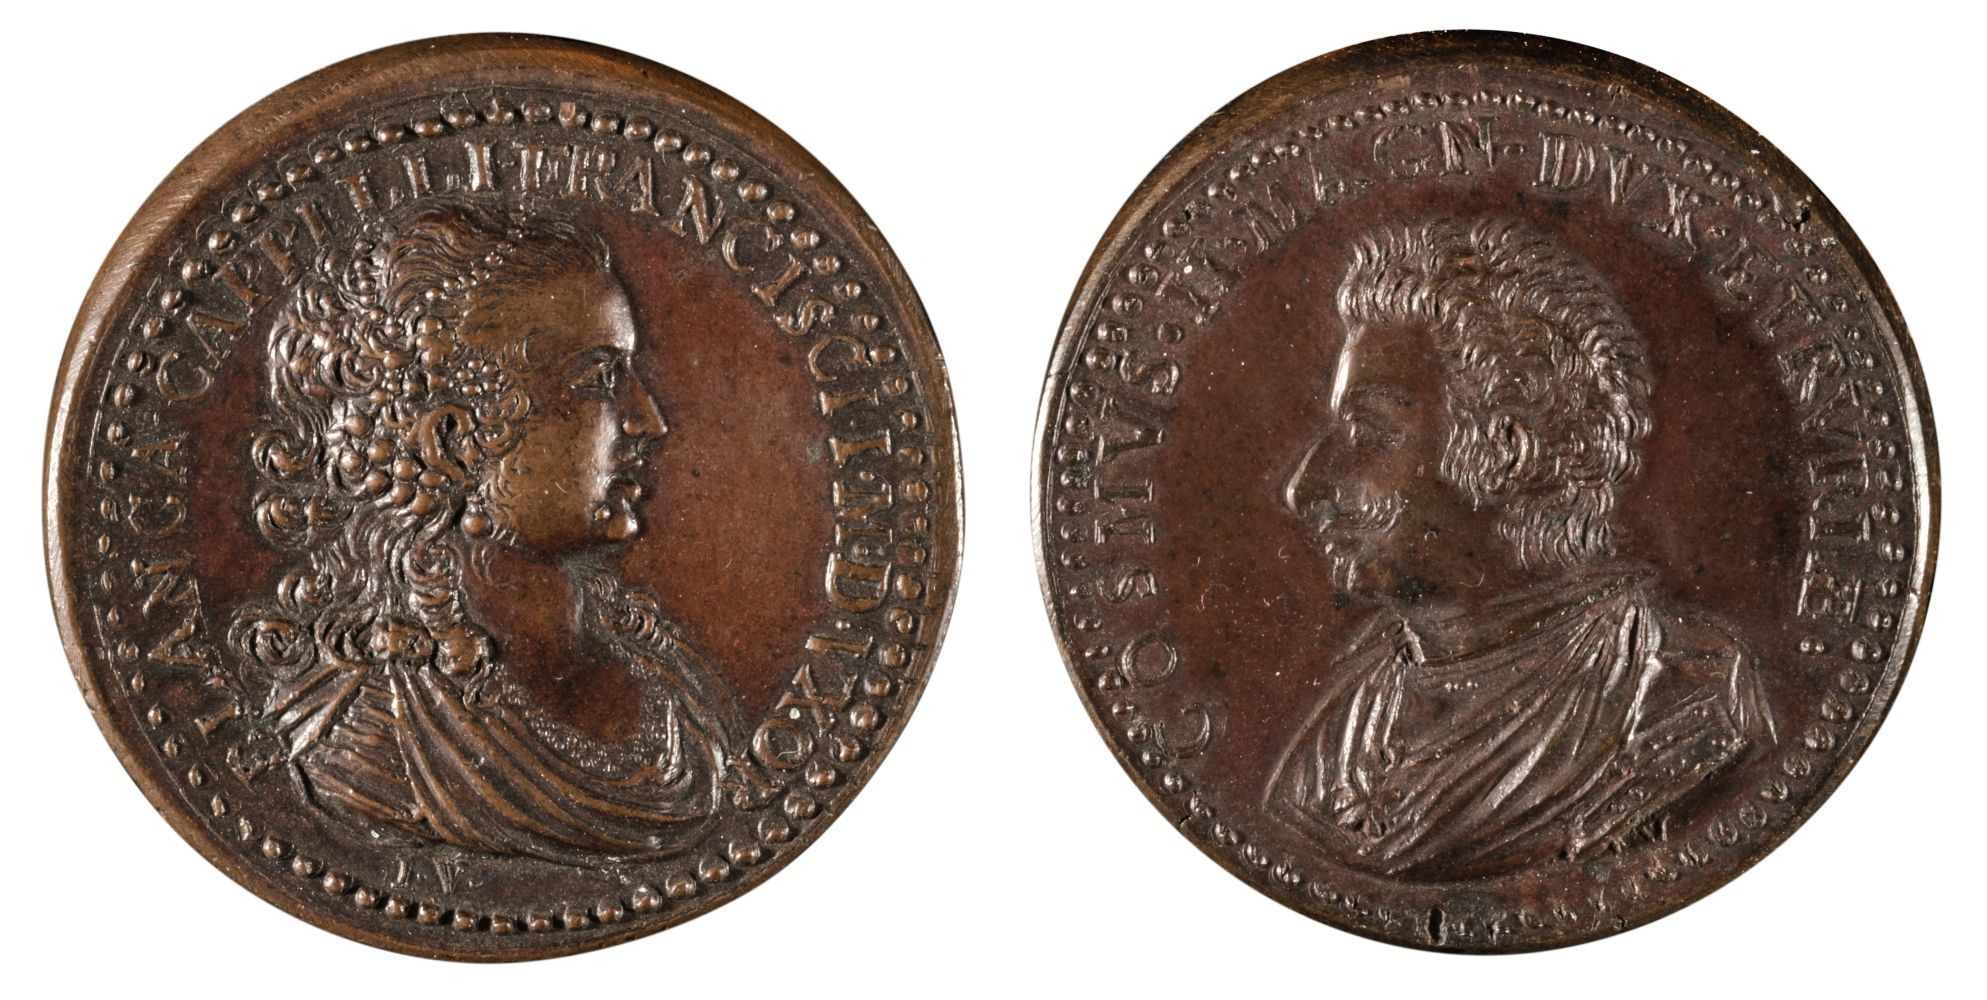 * Medals. Cosimo De Medici (1590-1621) and Bianca Capello (1548-87). Bronze Medals by Weber